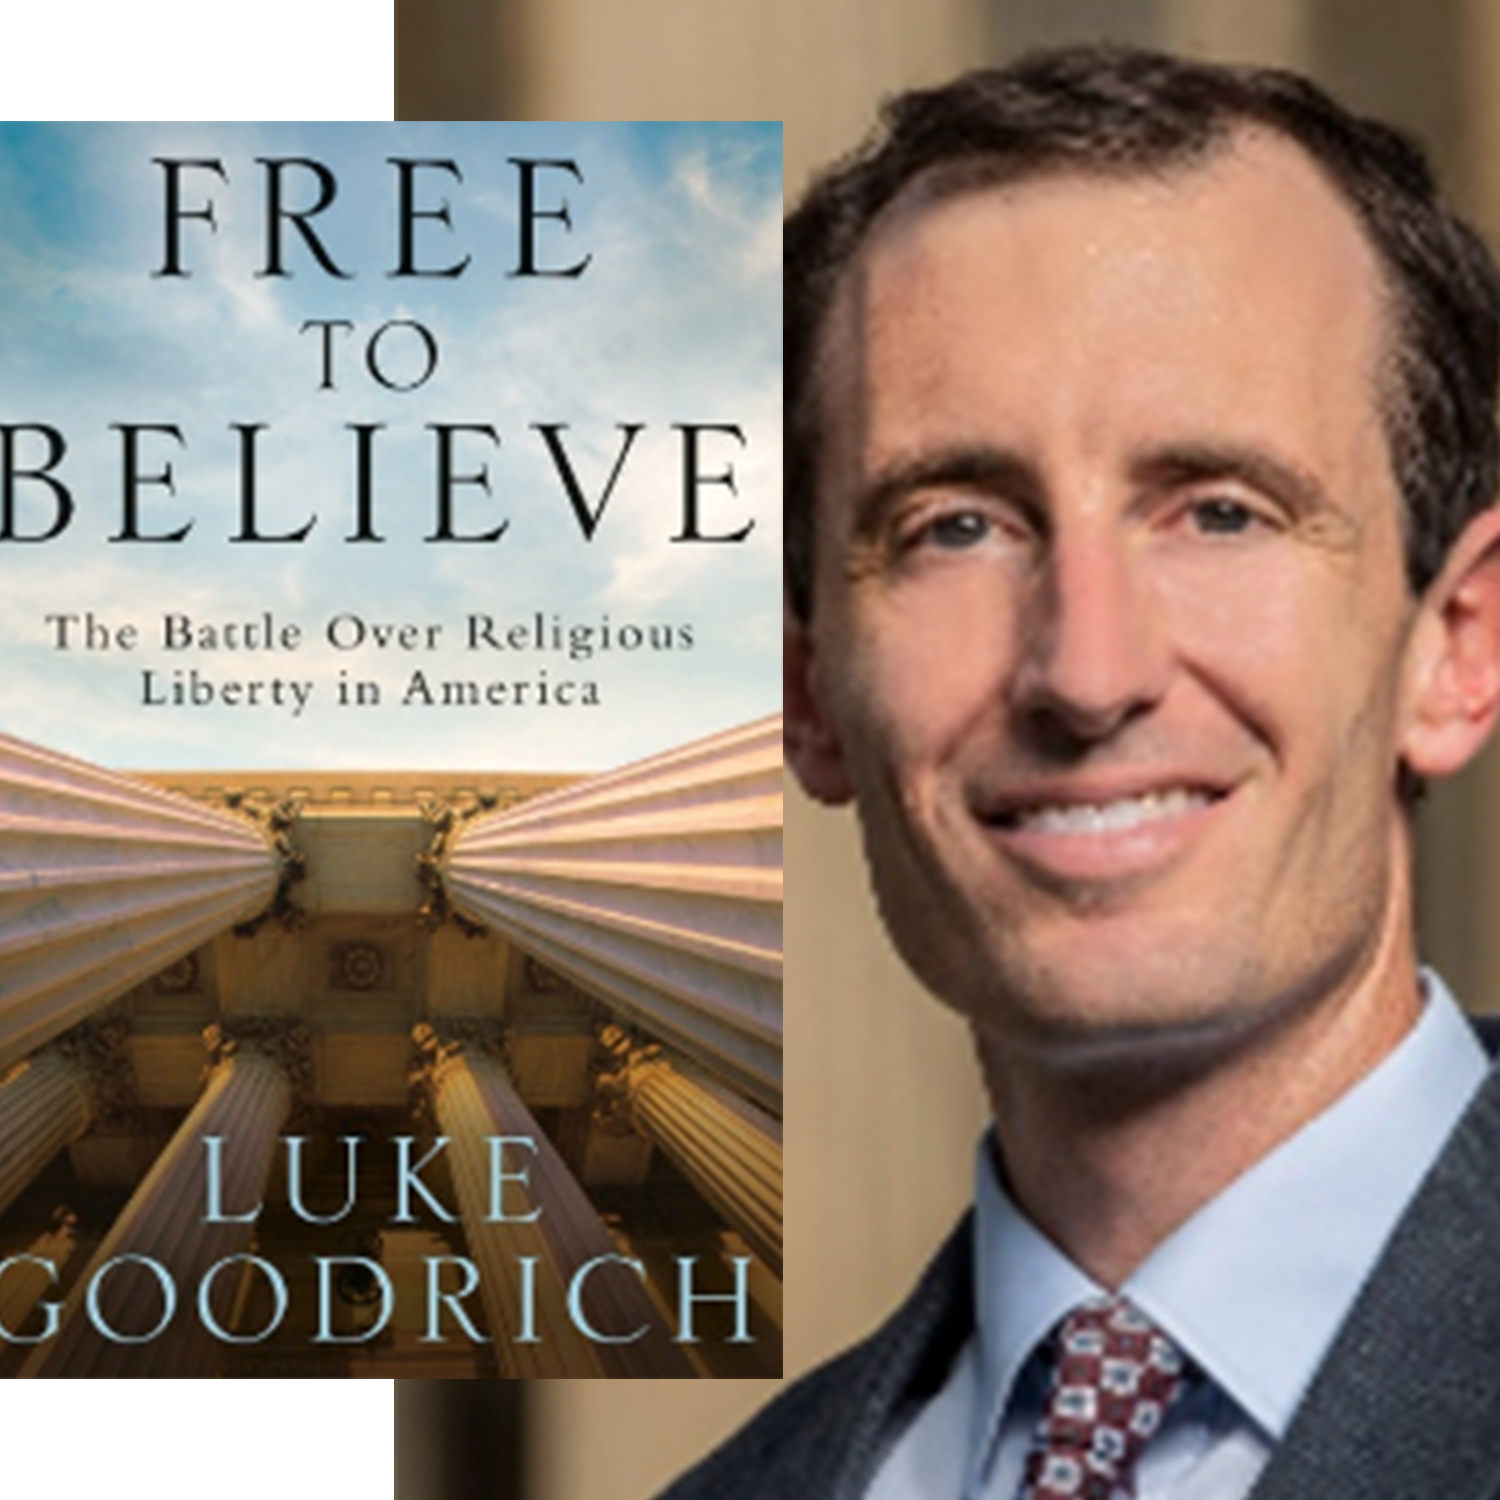 Ep. 30 – The battle over religious liberty in America, with Luke Goodrich of Becket